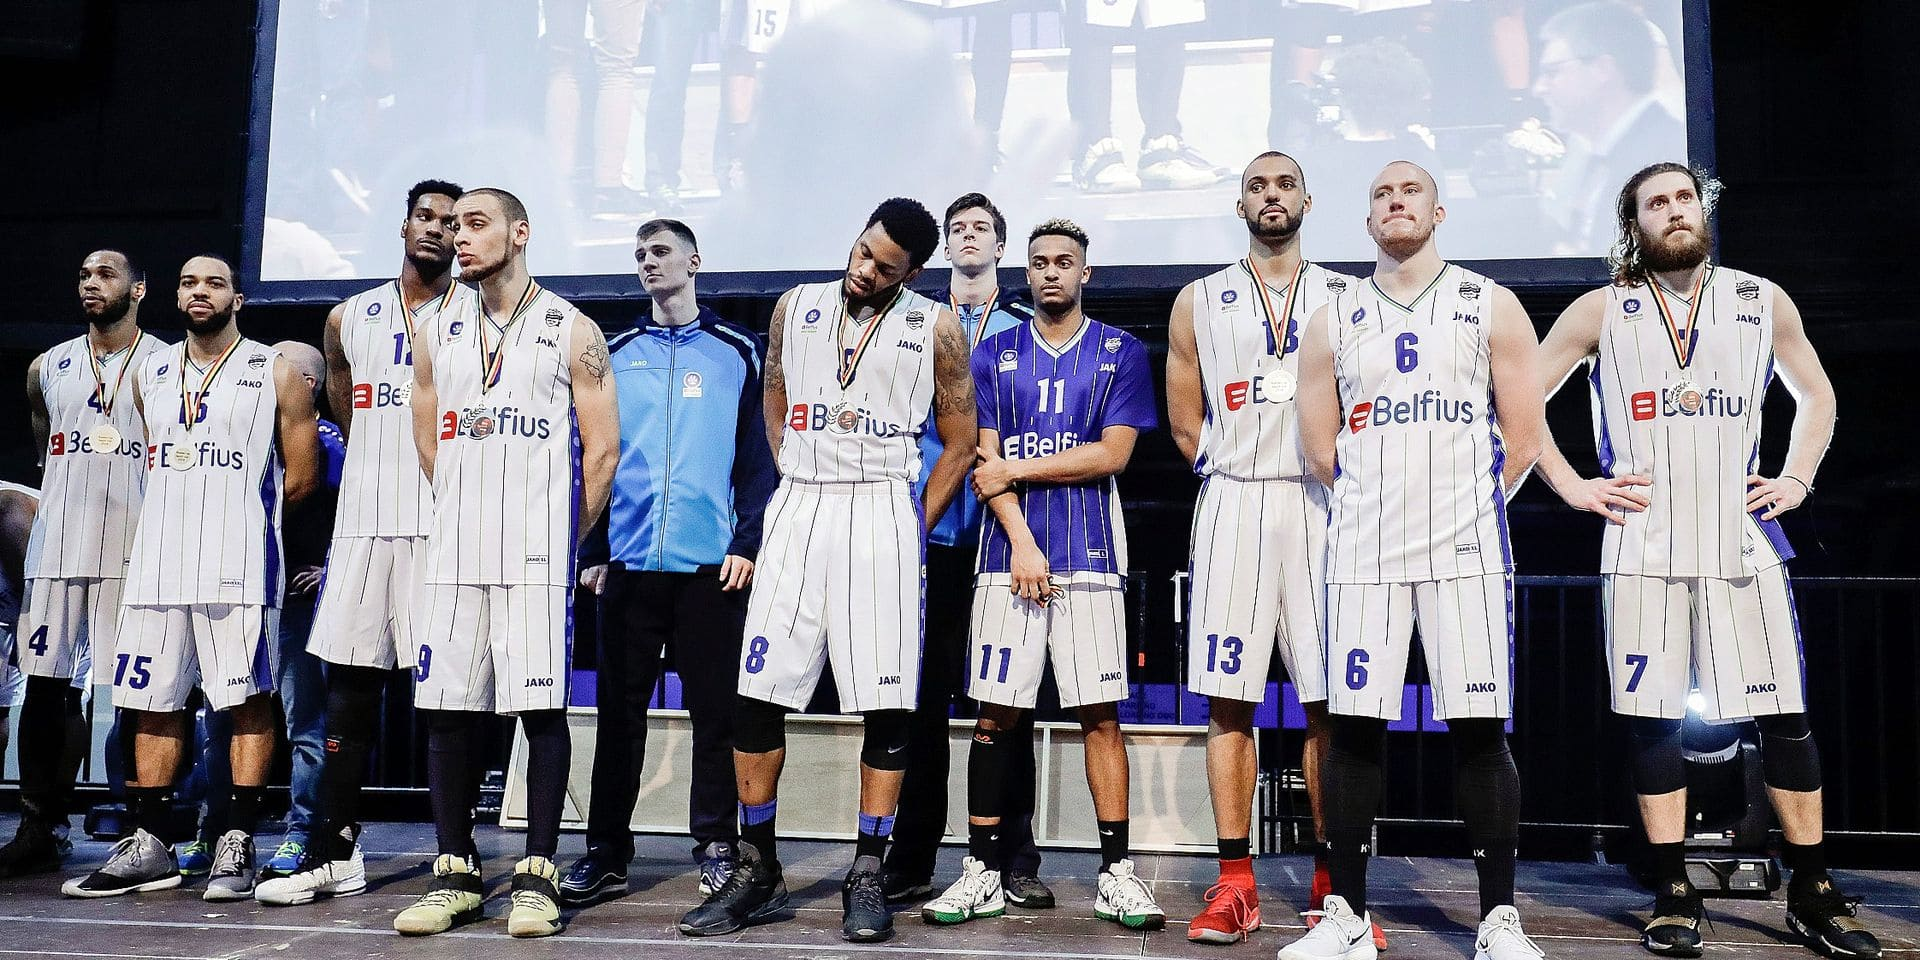 Mons' players pictured after the basketball match between BC Oostende and Mons-Hainaut, the final of the Belgian Bpost Cup competition, Sunday 11 March 2018 in Brussels. BELGA PHOTO THIERRY ROGE